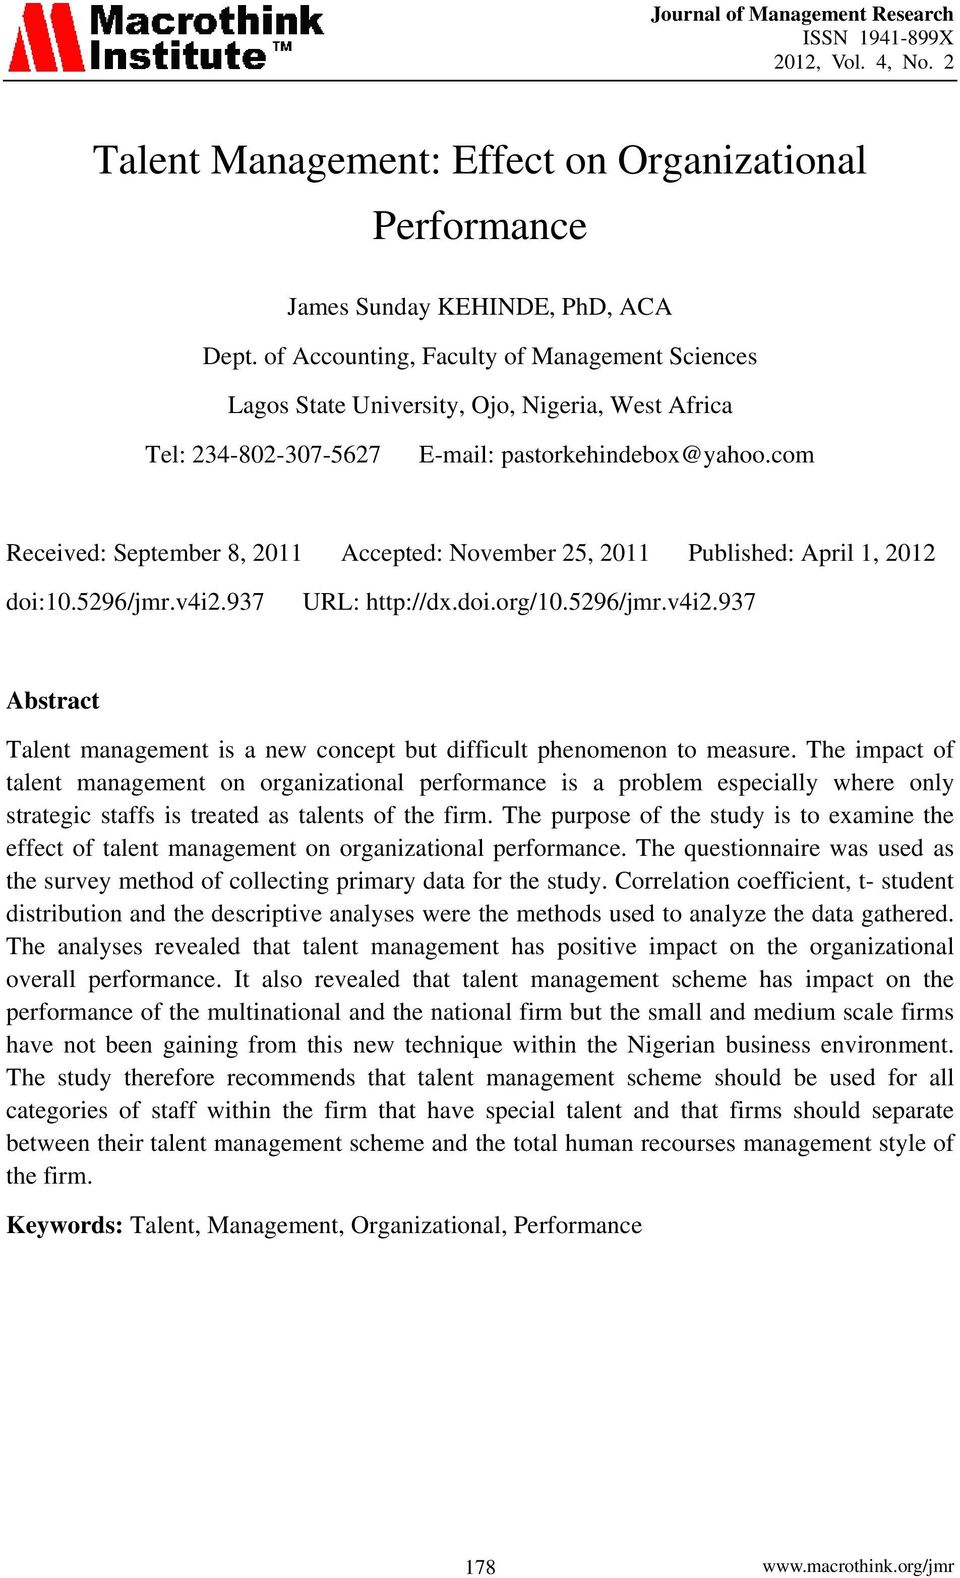 com Received: September 8, 2011 Accepted: November 25, 2011 Published: April 1, 2012 doi:10.5296/jmr.v4i2.937 URL: http://dx.doi.org/10.5296/jmr.v4i2.937 Abstract Talent management is a new concept but difficult phenomenon to measure.